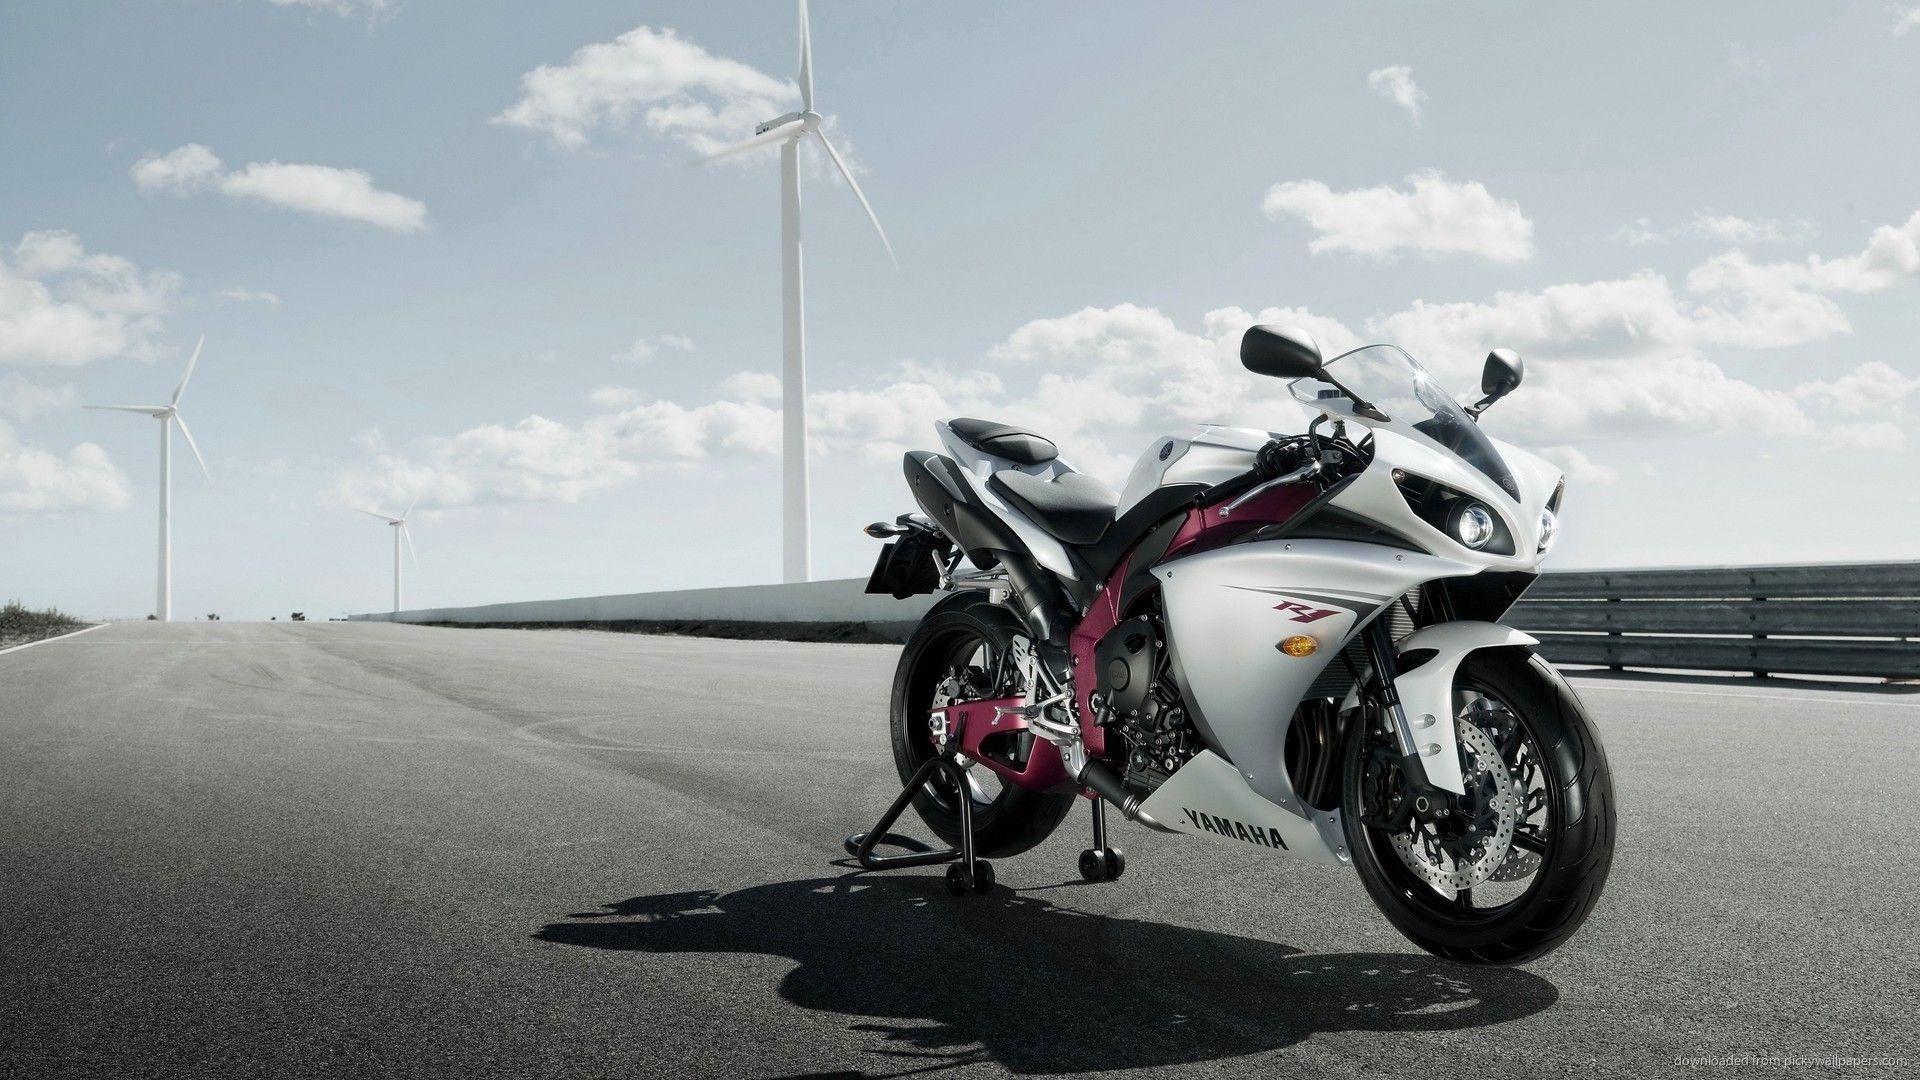 yamaha yzf- r1 wallpapers - wallpaper cave